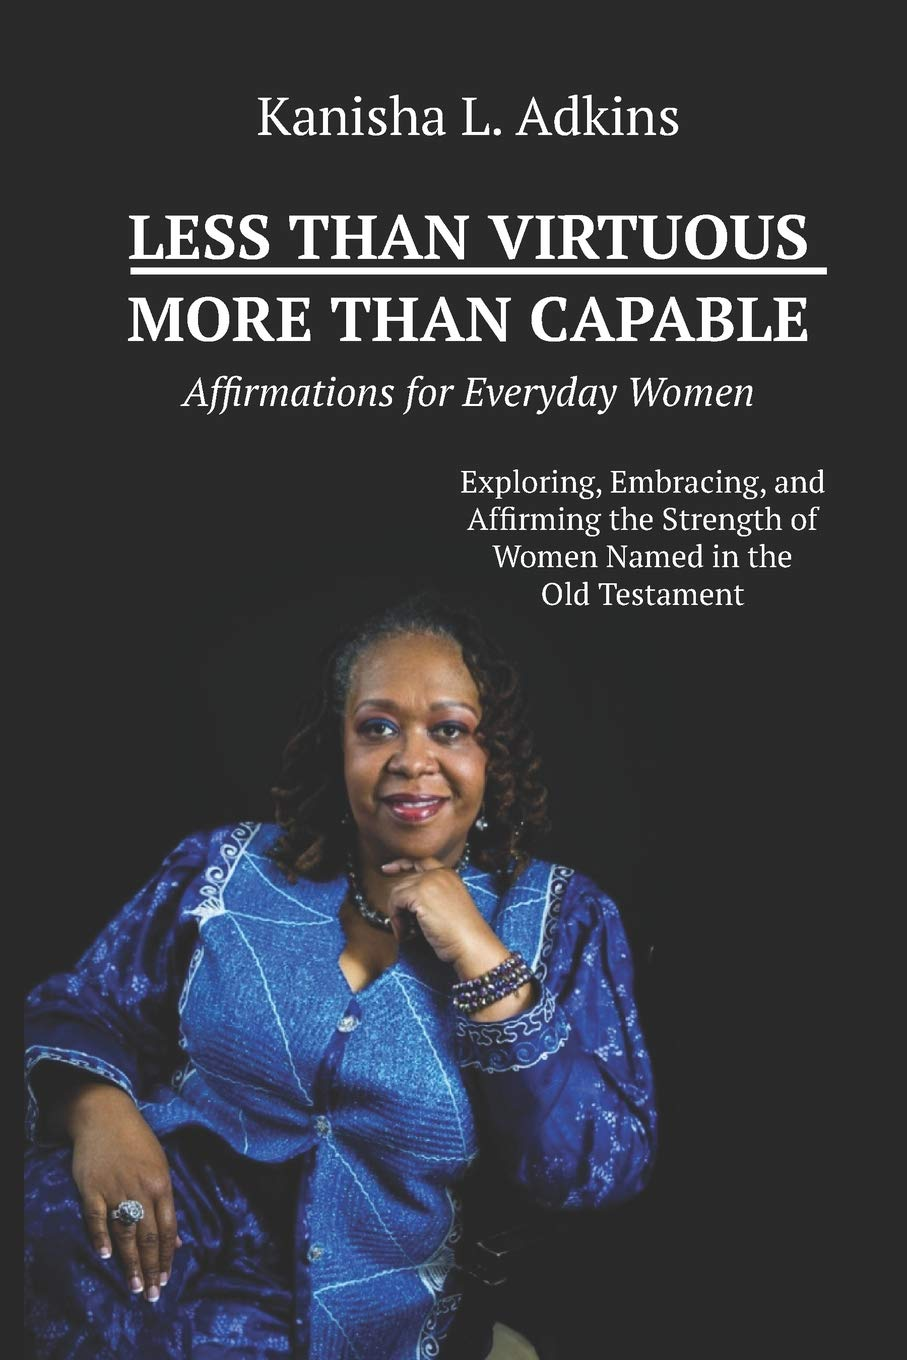 Less Than Virtuous—More Than Capable: Affirmations for Everyday Women, by Rev. Dr. Kanisha L. Adkins